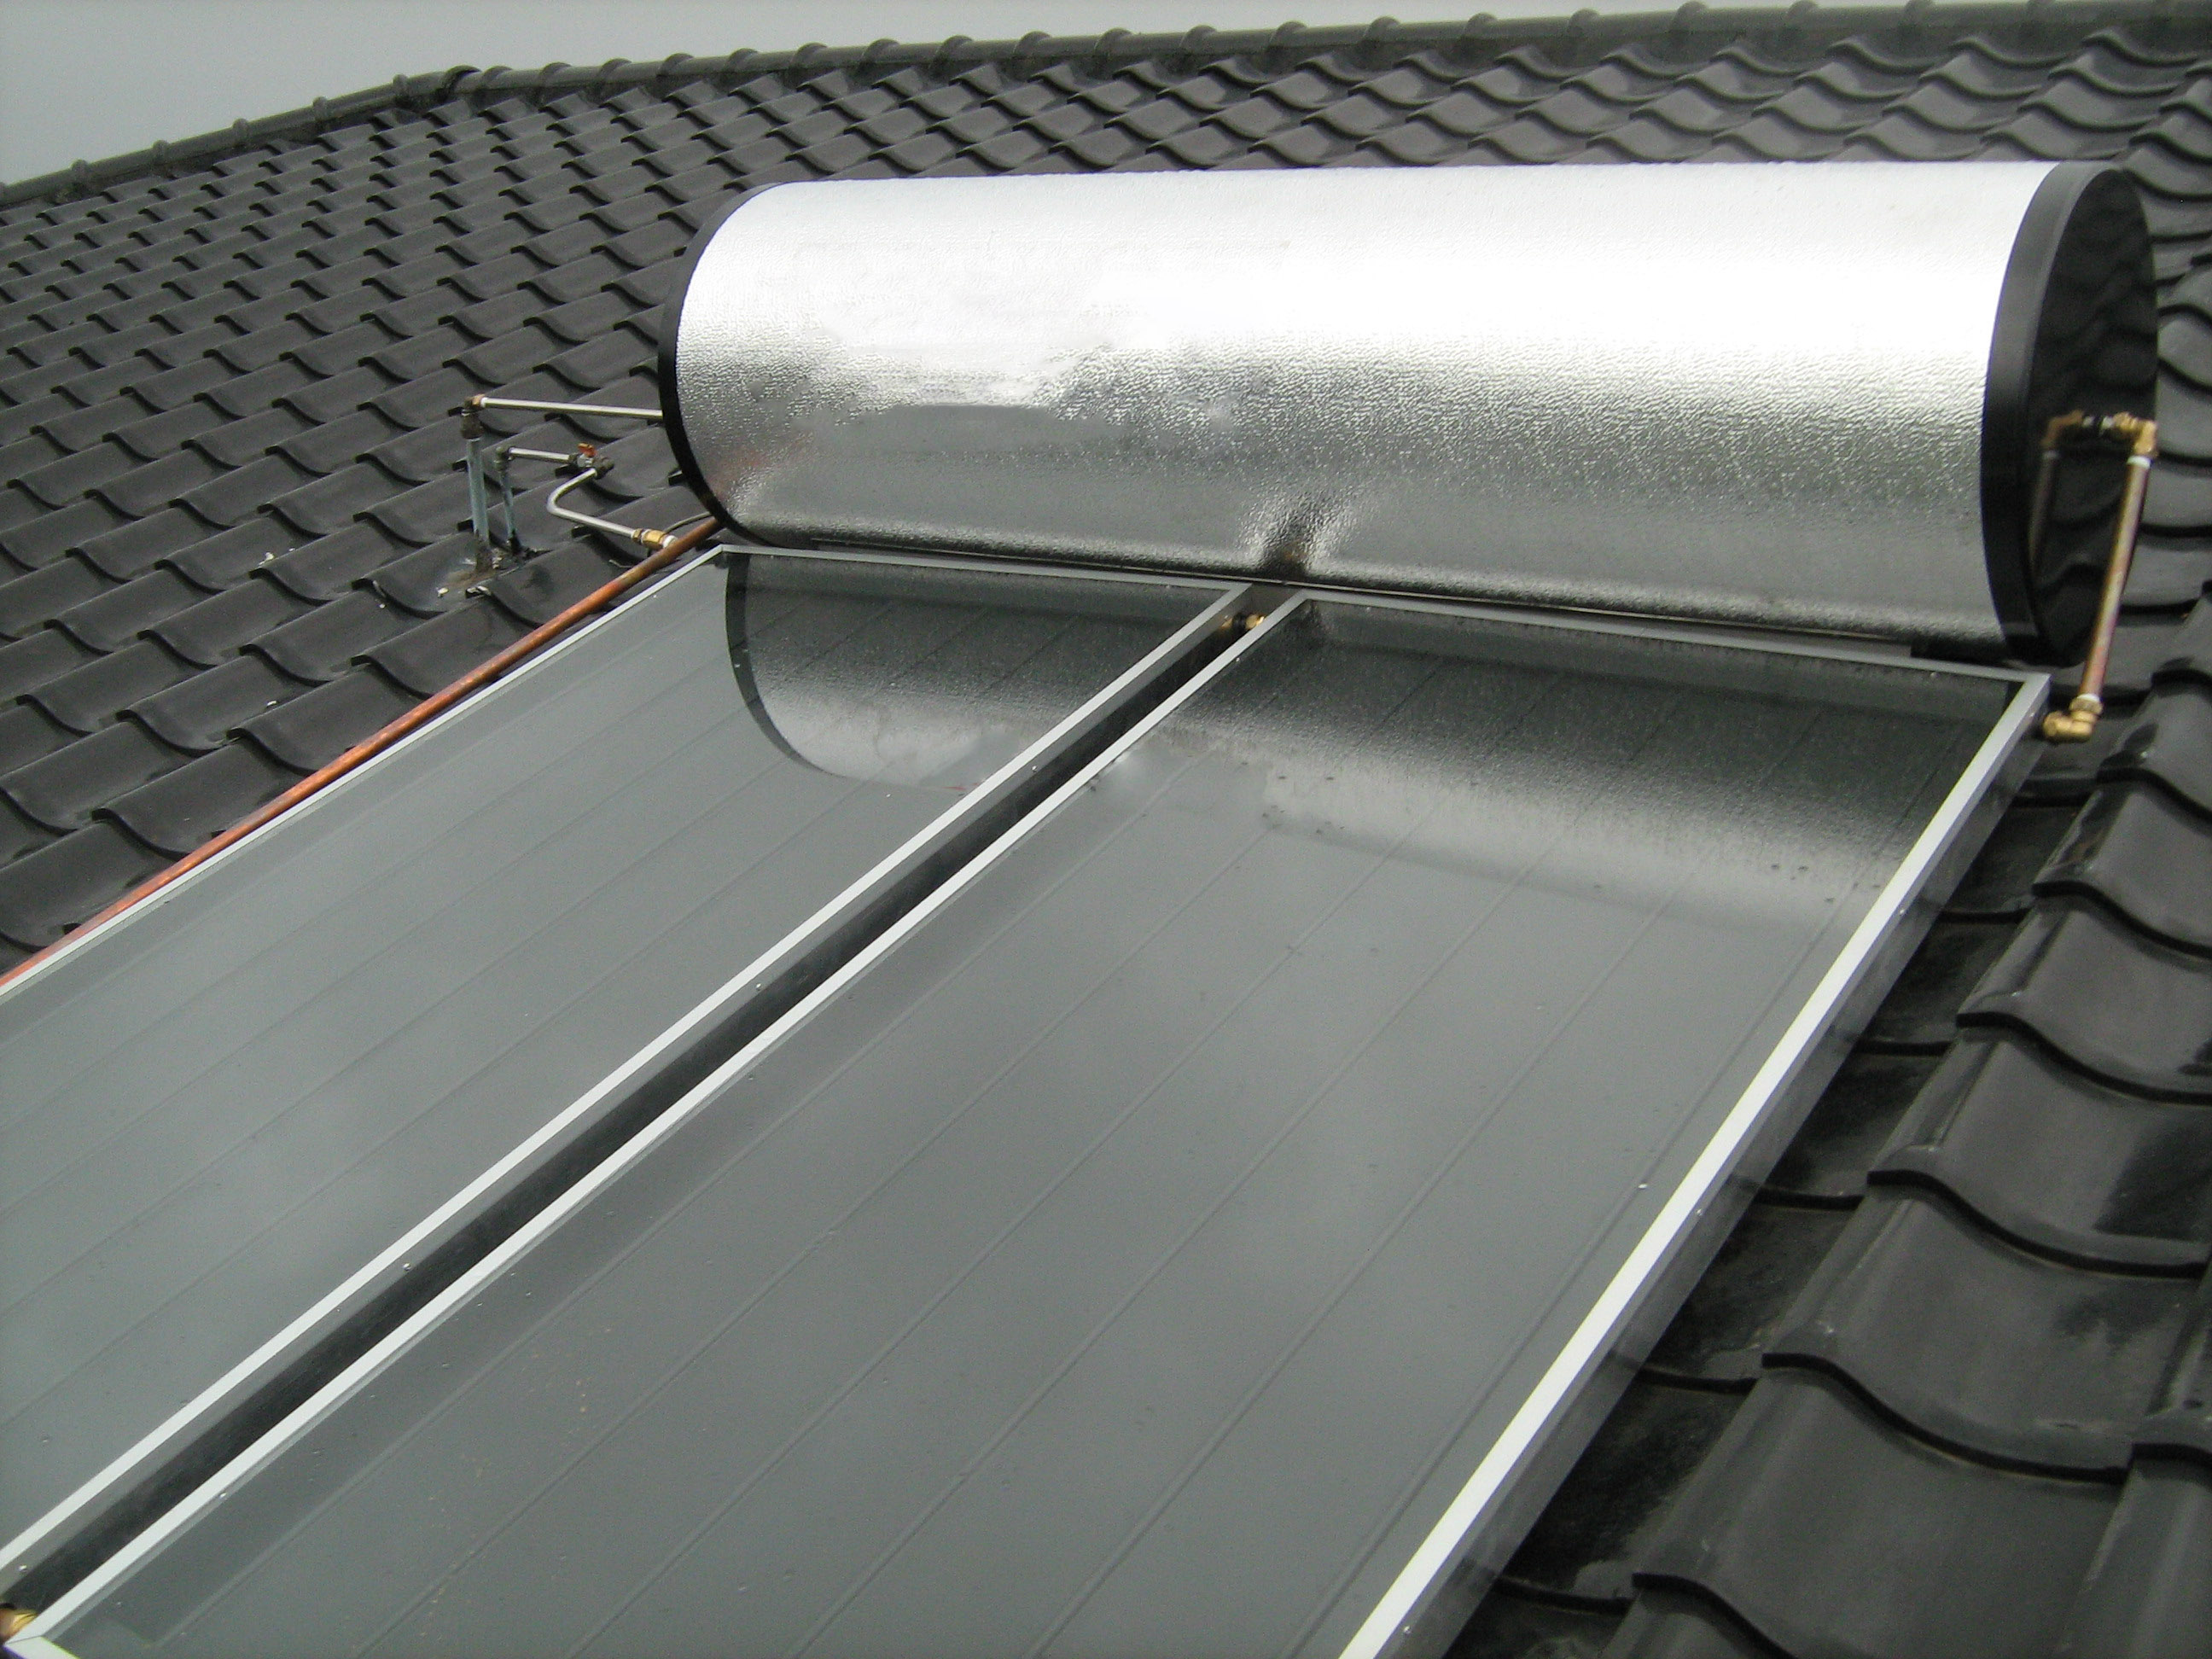 Thermal Solar Water Heating in Redding, CA